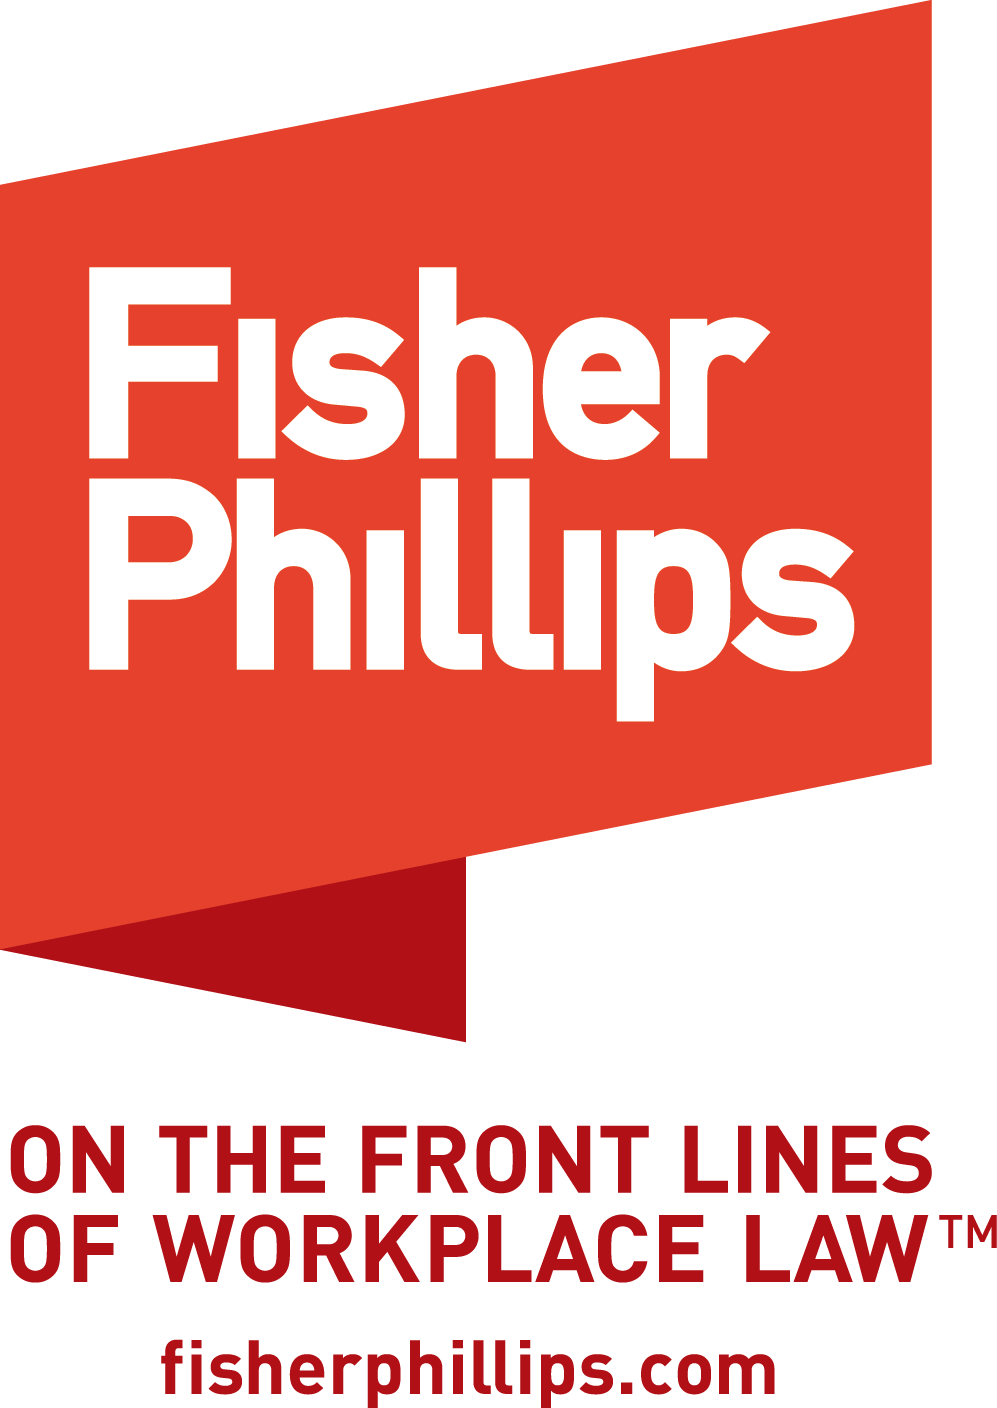 fisherphillips